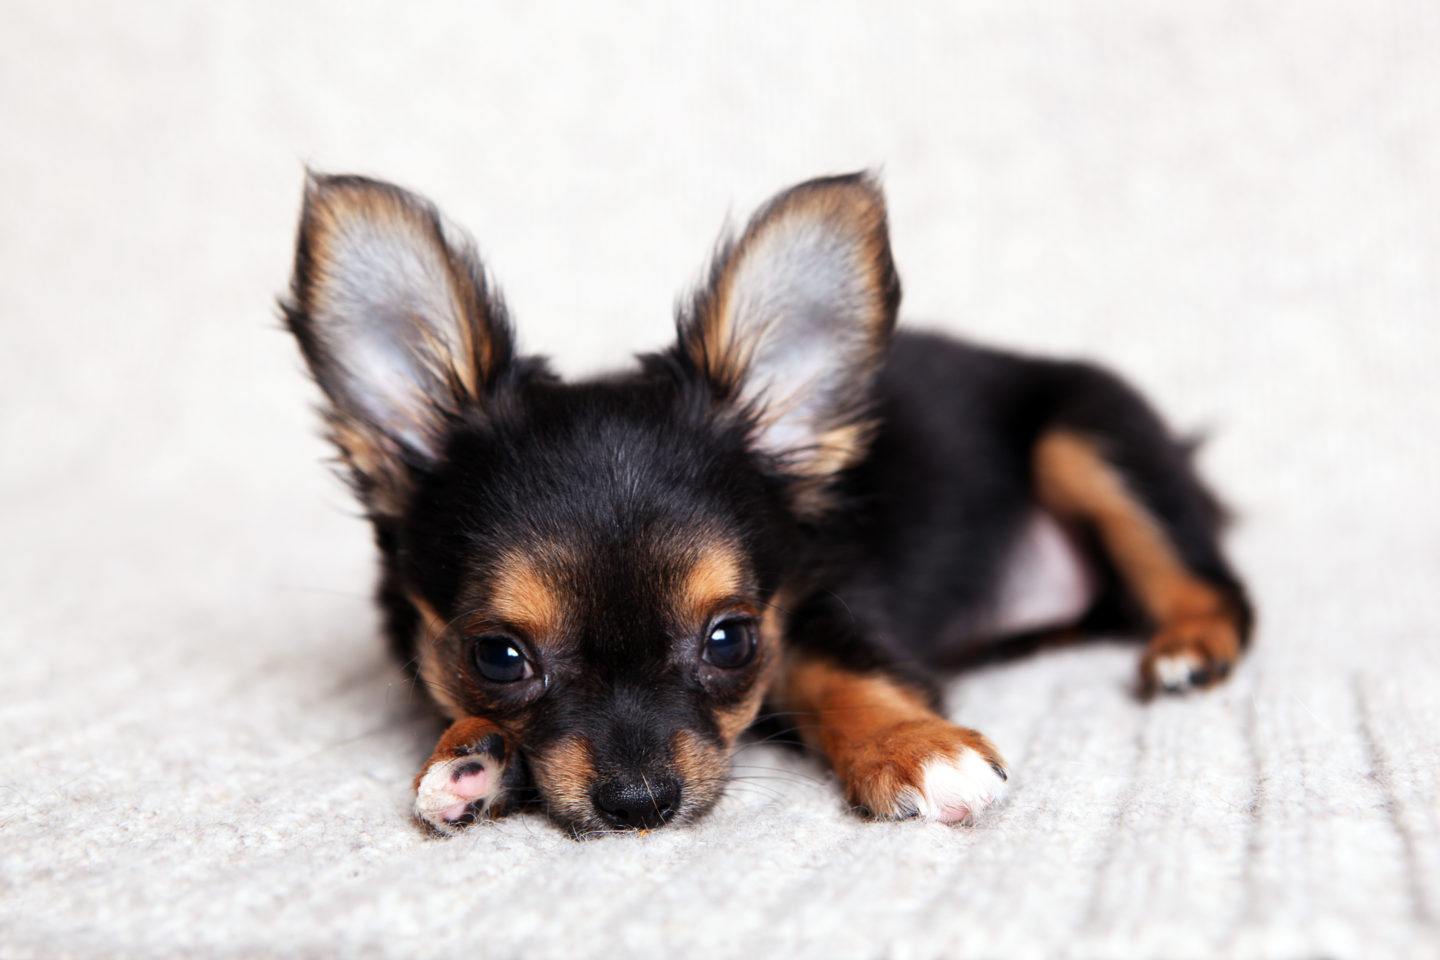 Toilet Training Trials: How To Toilet Train Your Chihuahua